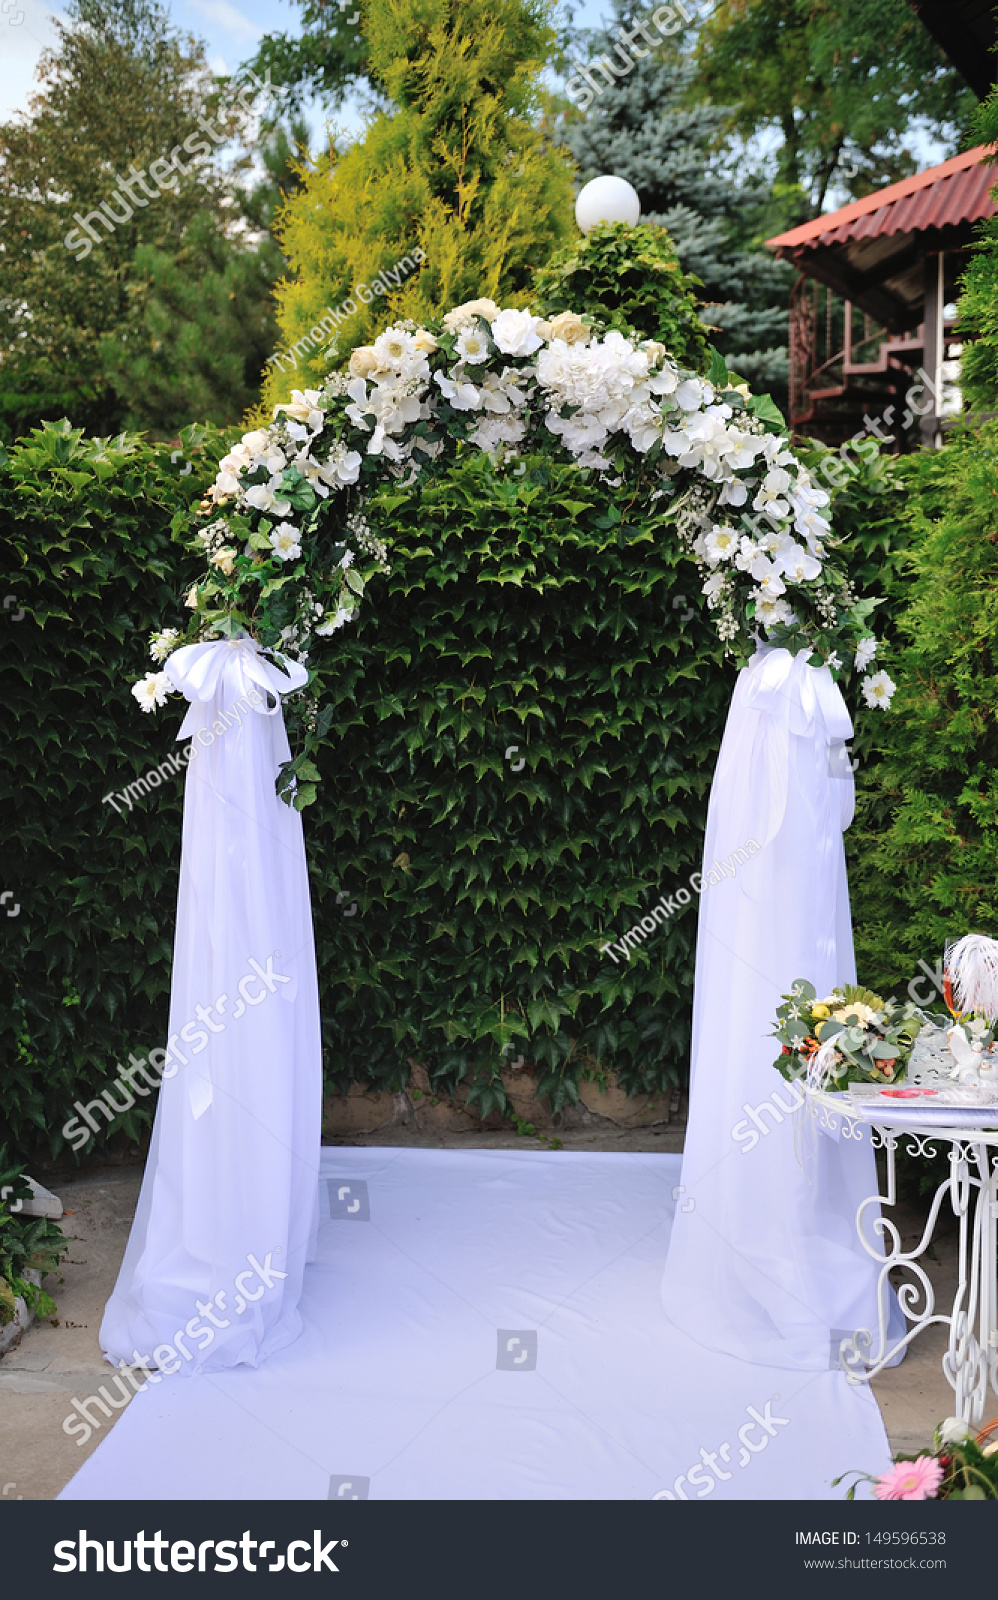 stock photo wedding arch with white flowers 149596538 - blue and white beach wedding